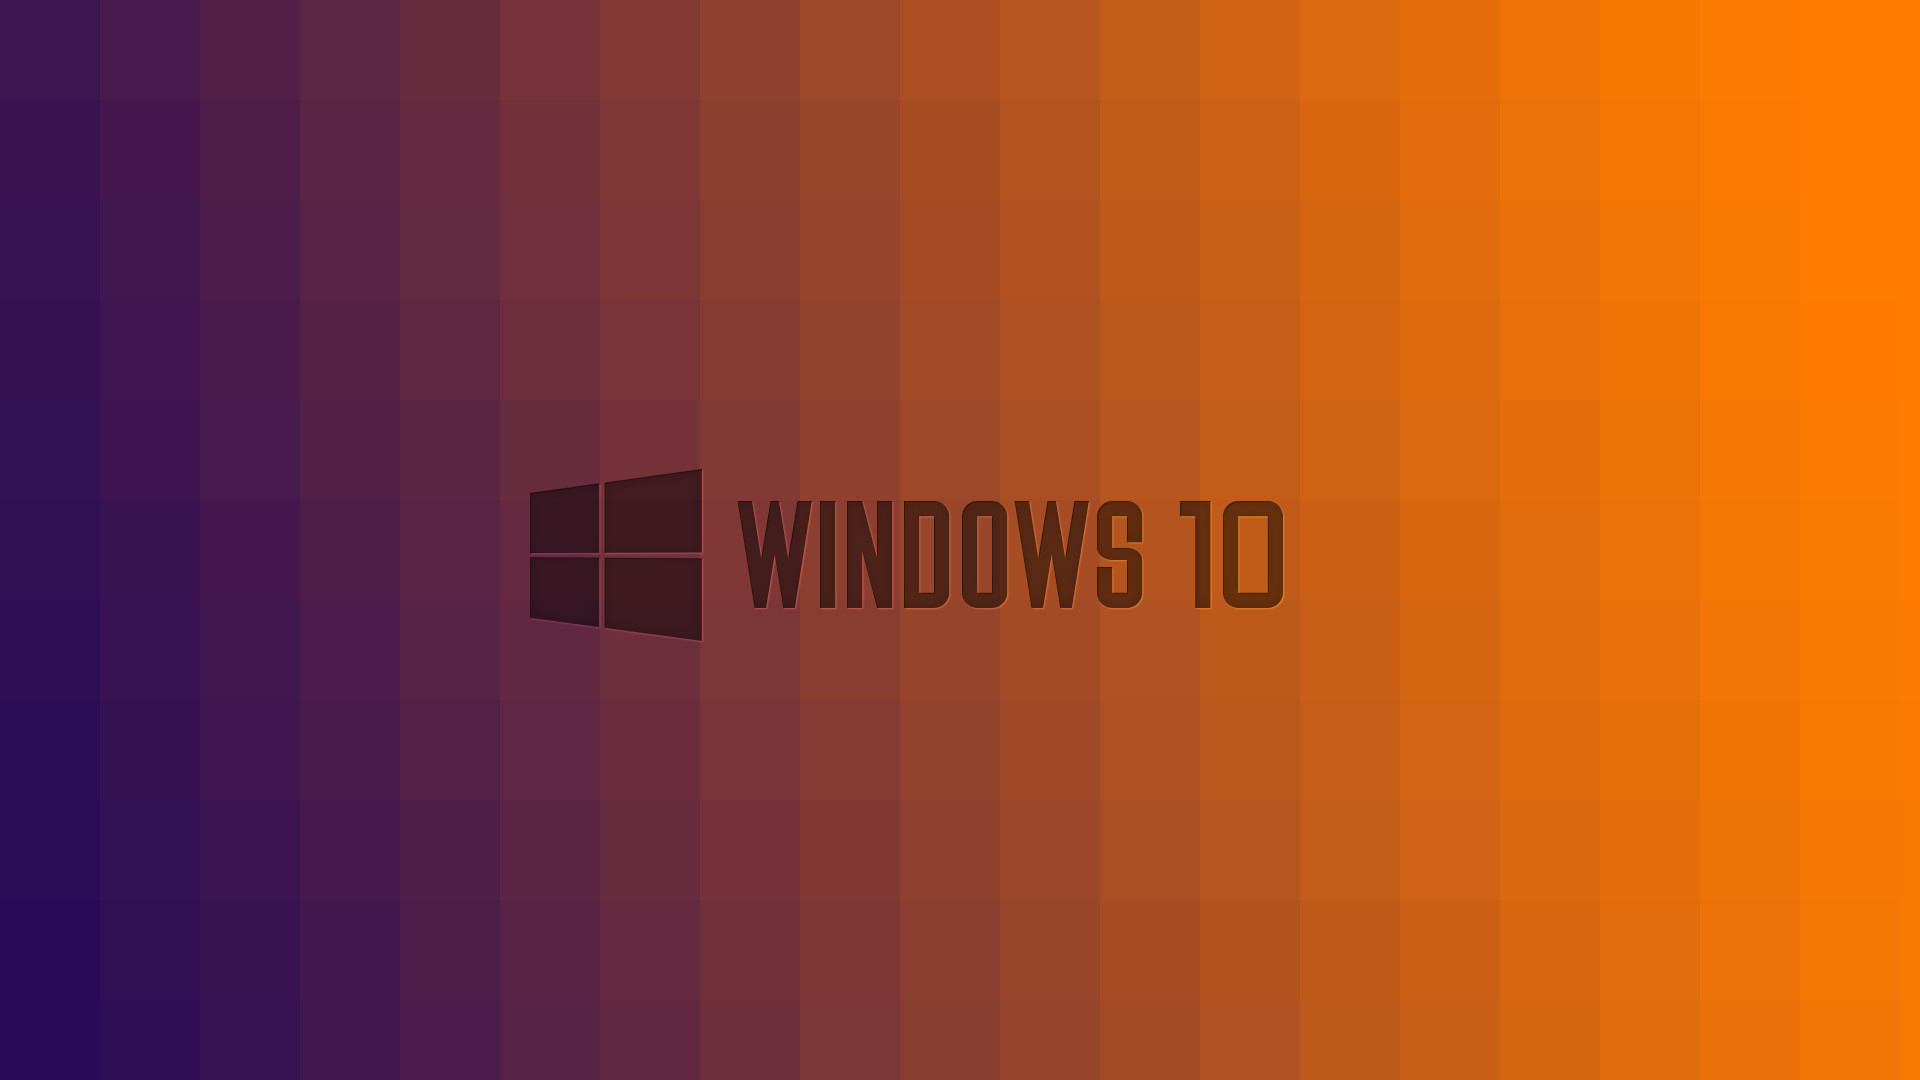 1920x1080 Windows 10 Logo Wallpaper and Theme Pack | All for Windows 10 Free